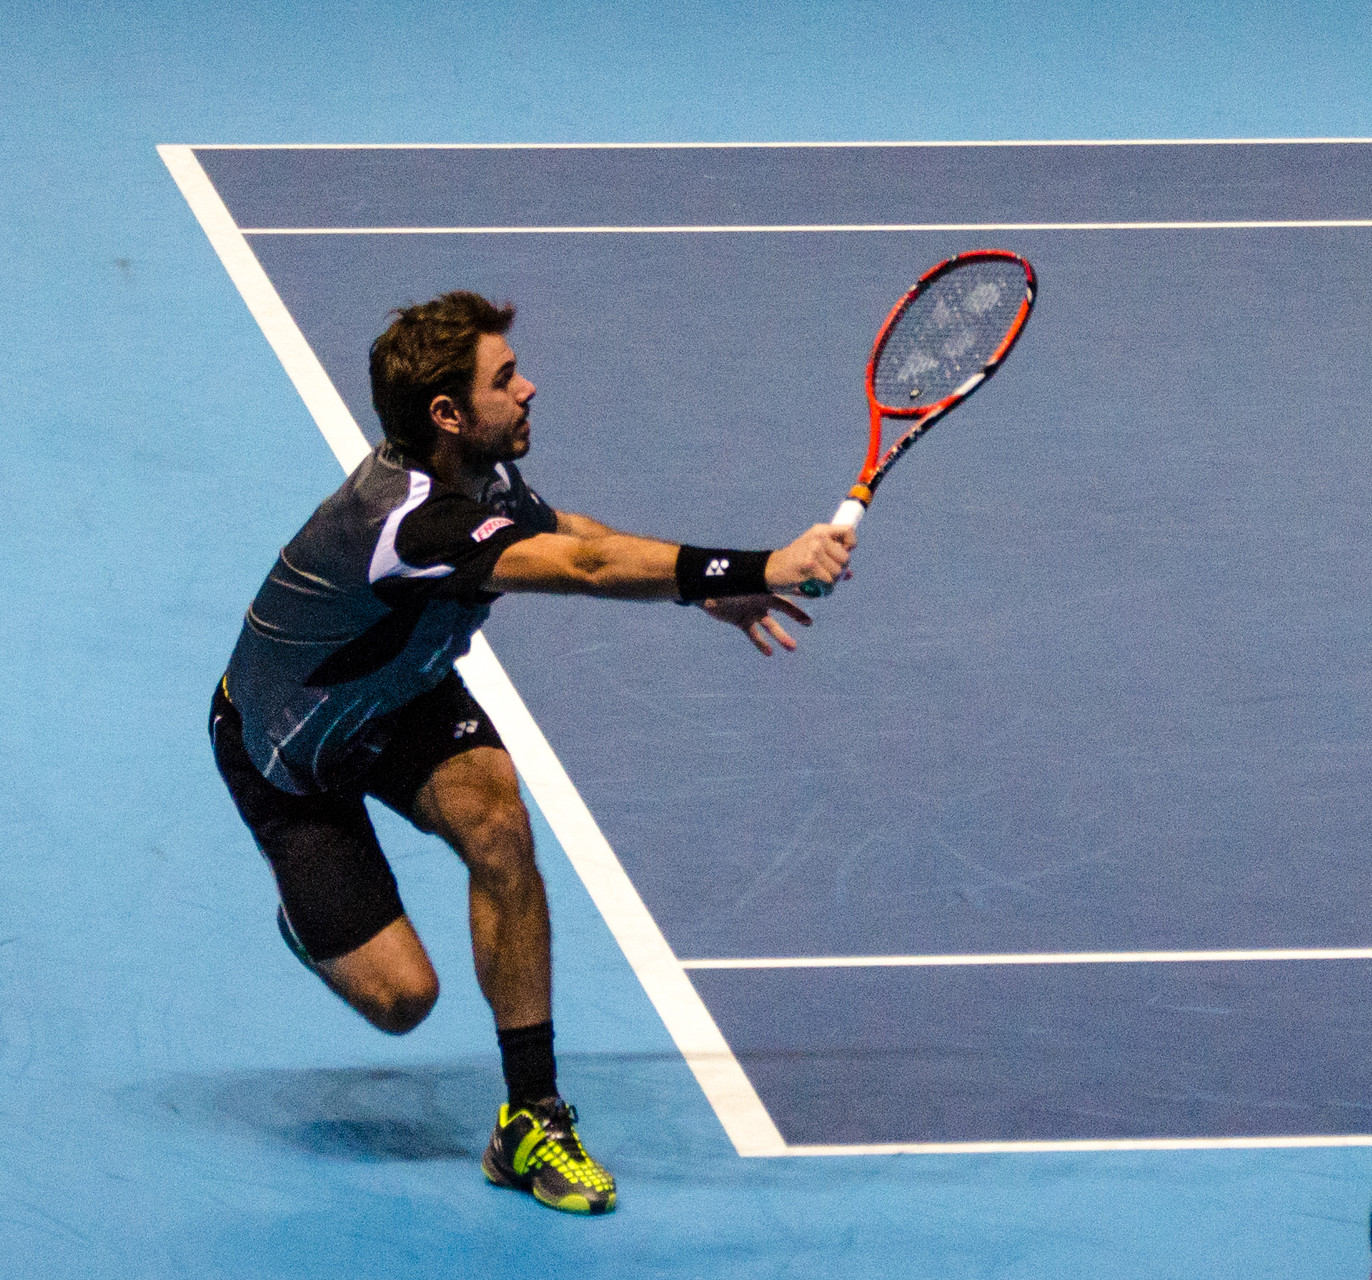 Gewaltig strecken wird sich Titelverteidiger Stan Wawrinka müssen. Der Schweizer bekommt es ... (Foto by: Michael Frey (Michael Frey) (Own work) [CC BY-SA 3.0 (http://creativecommons.org/licenses/by-sa/3.0)], via Wikimedia Commons)